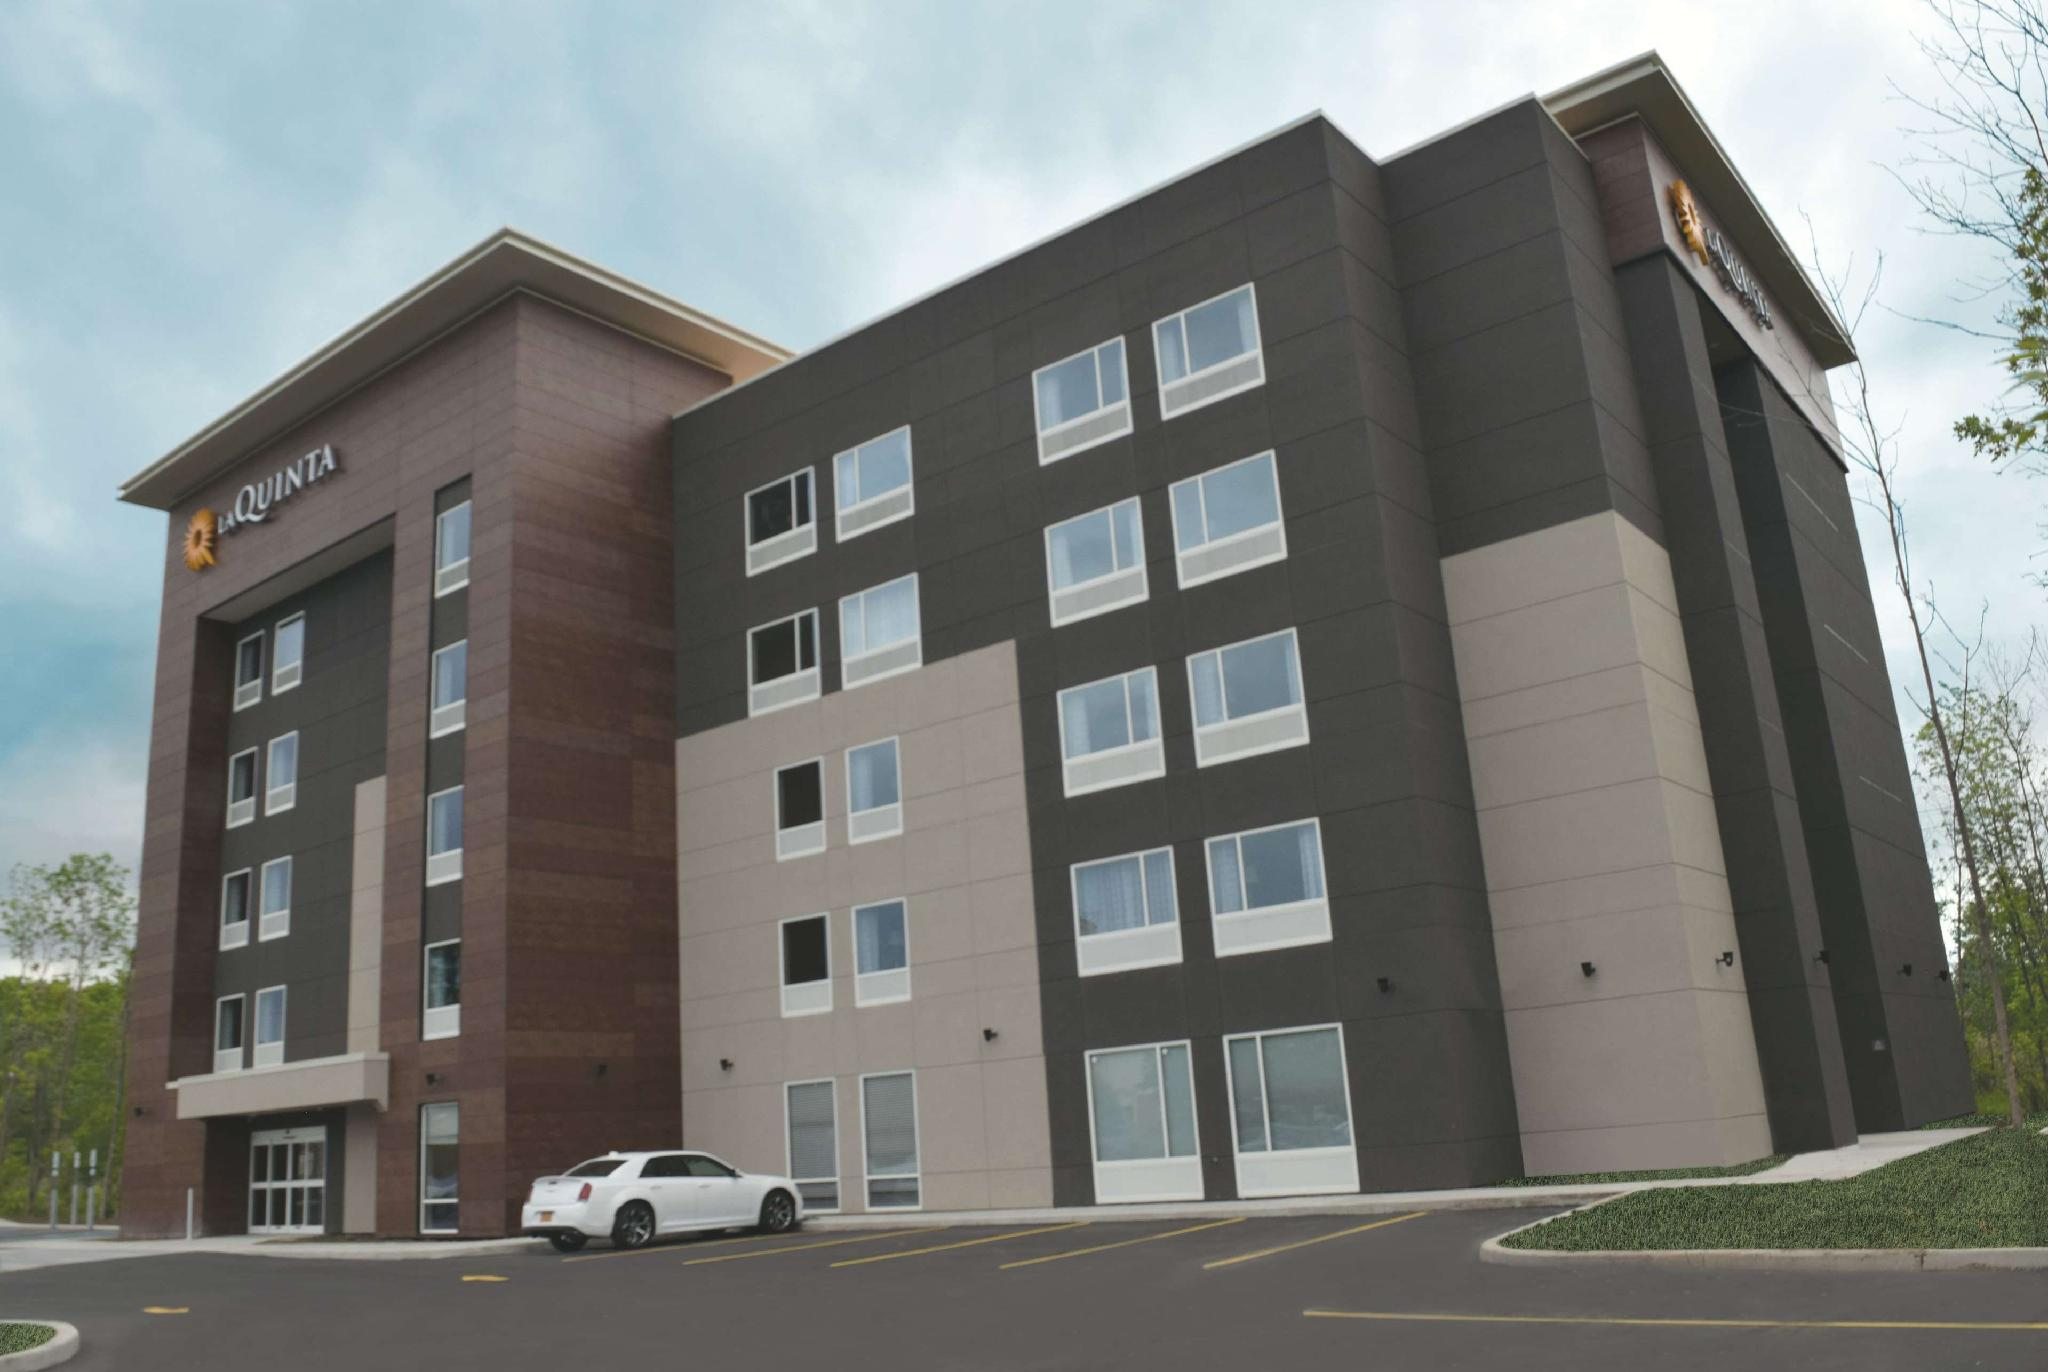 La Quinta Inn And Suites By Wyndham Buffalo Amherst